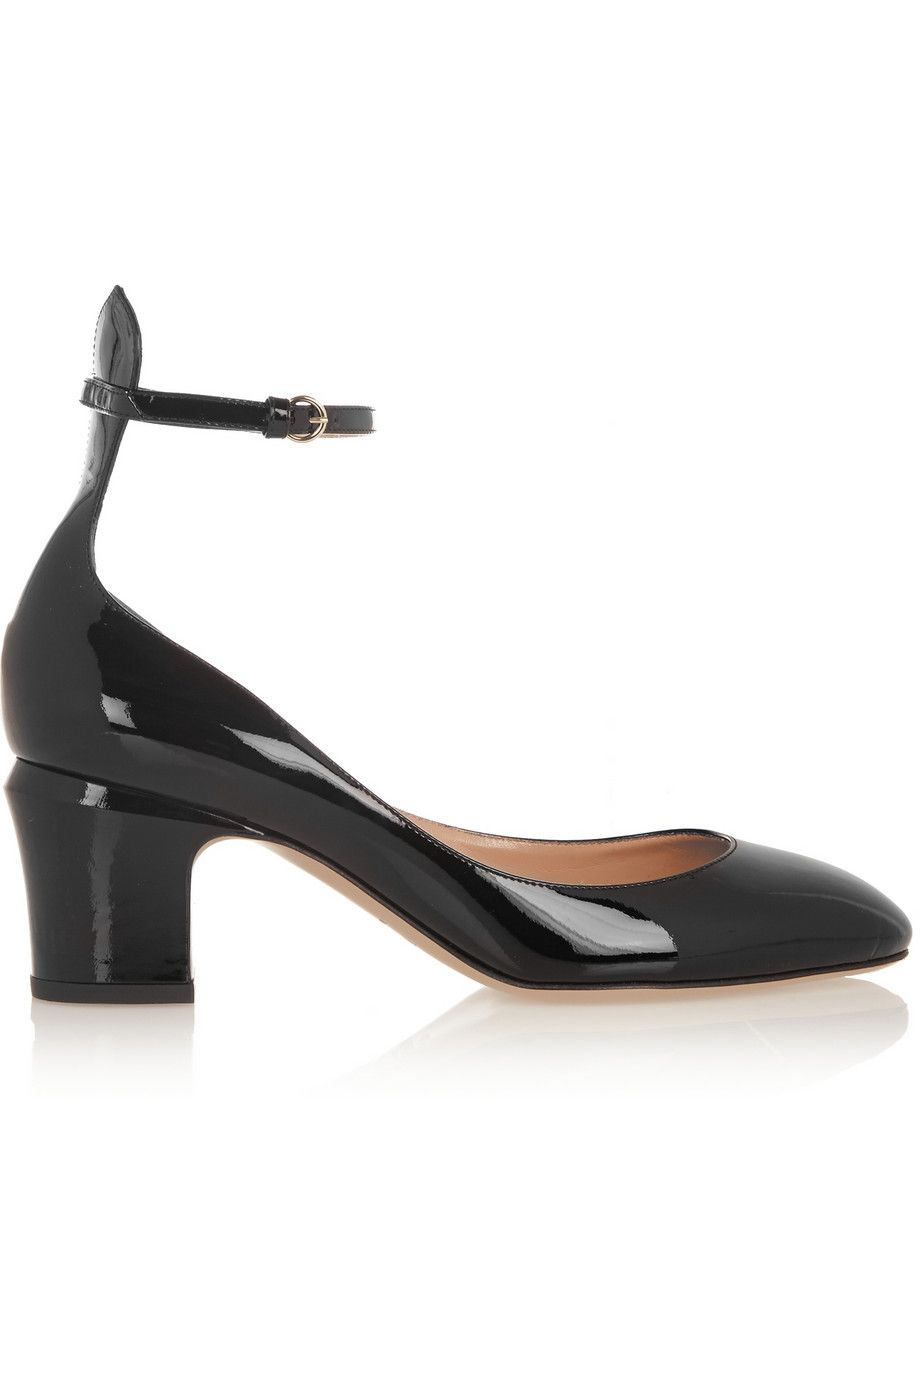 """<p>""""Valentino's Tan-Go patent-leather Mary Jane pumps were a game changer for me. They're so scooped out at the sides and the toe that they look sexy but the low 2 1/2 inch heel means they're incredibly comfortable and practical for walking in all day. I get complements about these All. The. Time.""""<span></span></p><p>Valentino Tan-Go Patent-Leather Mary Jane Pumps, $895; <a href=""""http://rstyle.me/n/8tehxbc6jf"""">net-a-porter.com</a><br></p>"""